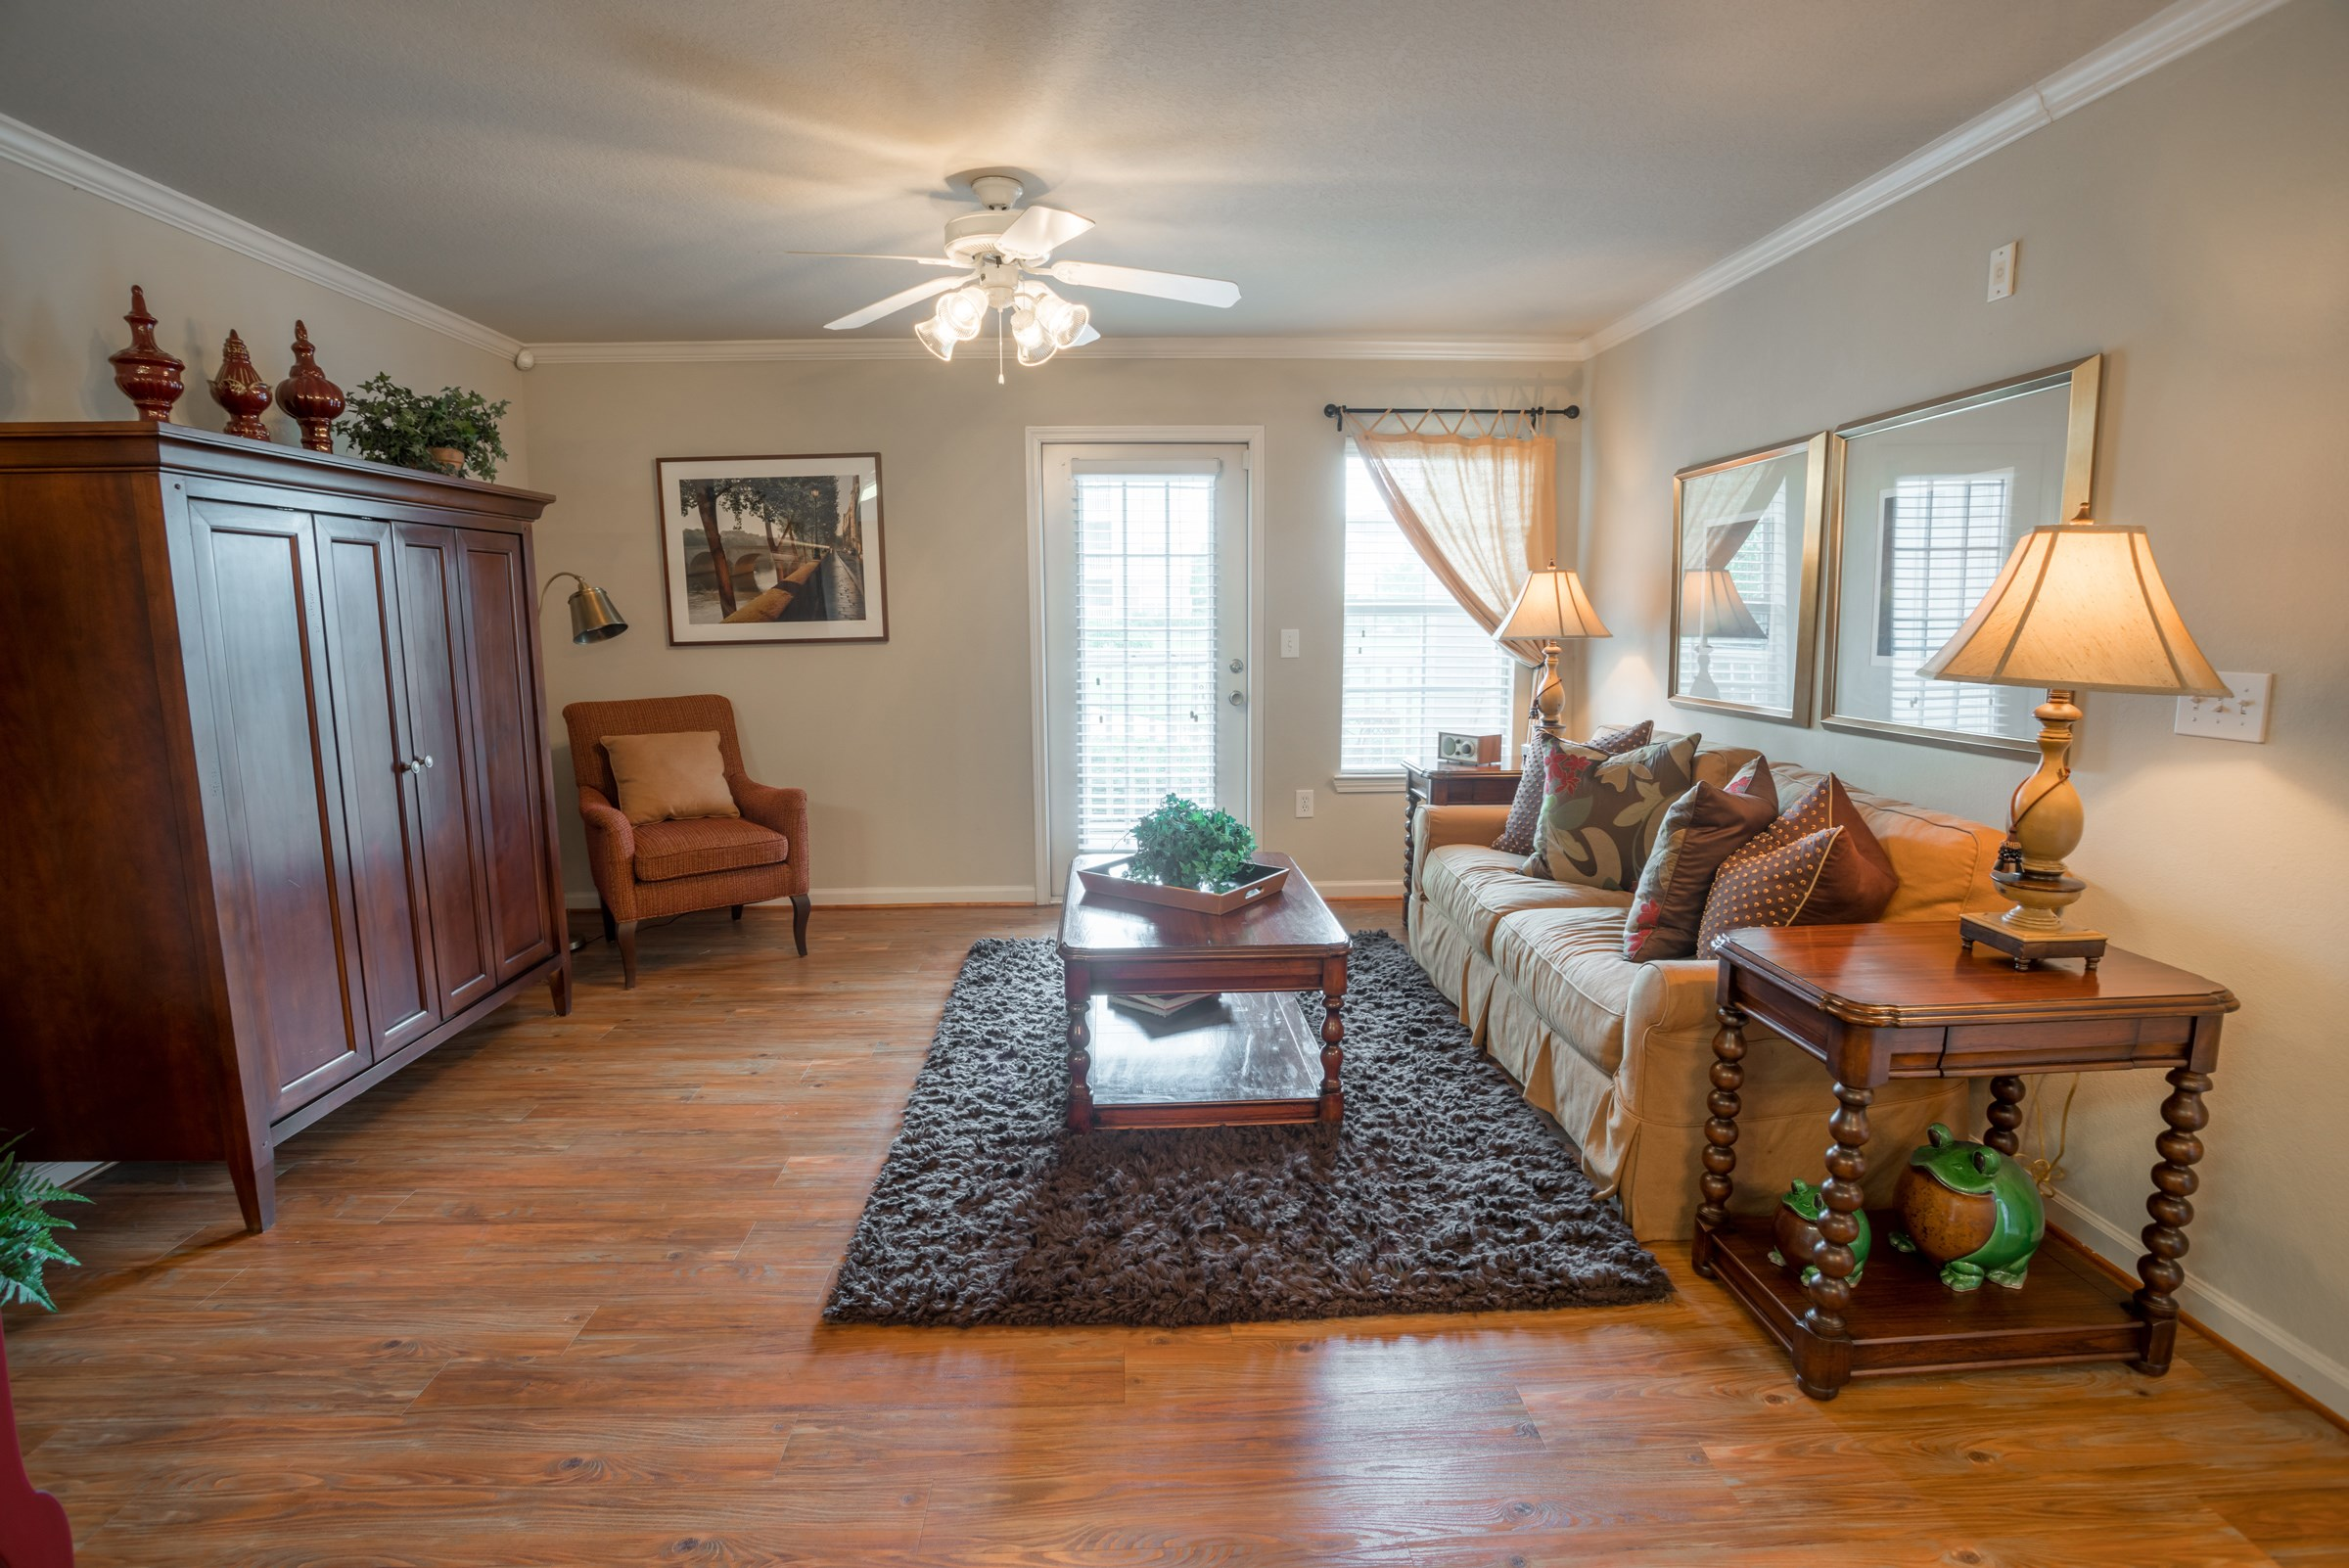 Living Room at Verandas at Taylor Oaks Apartments in Montgomery, AL